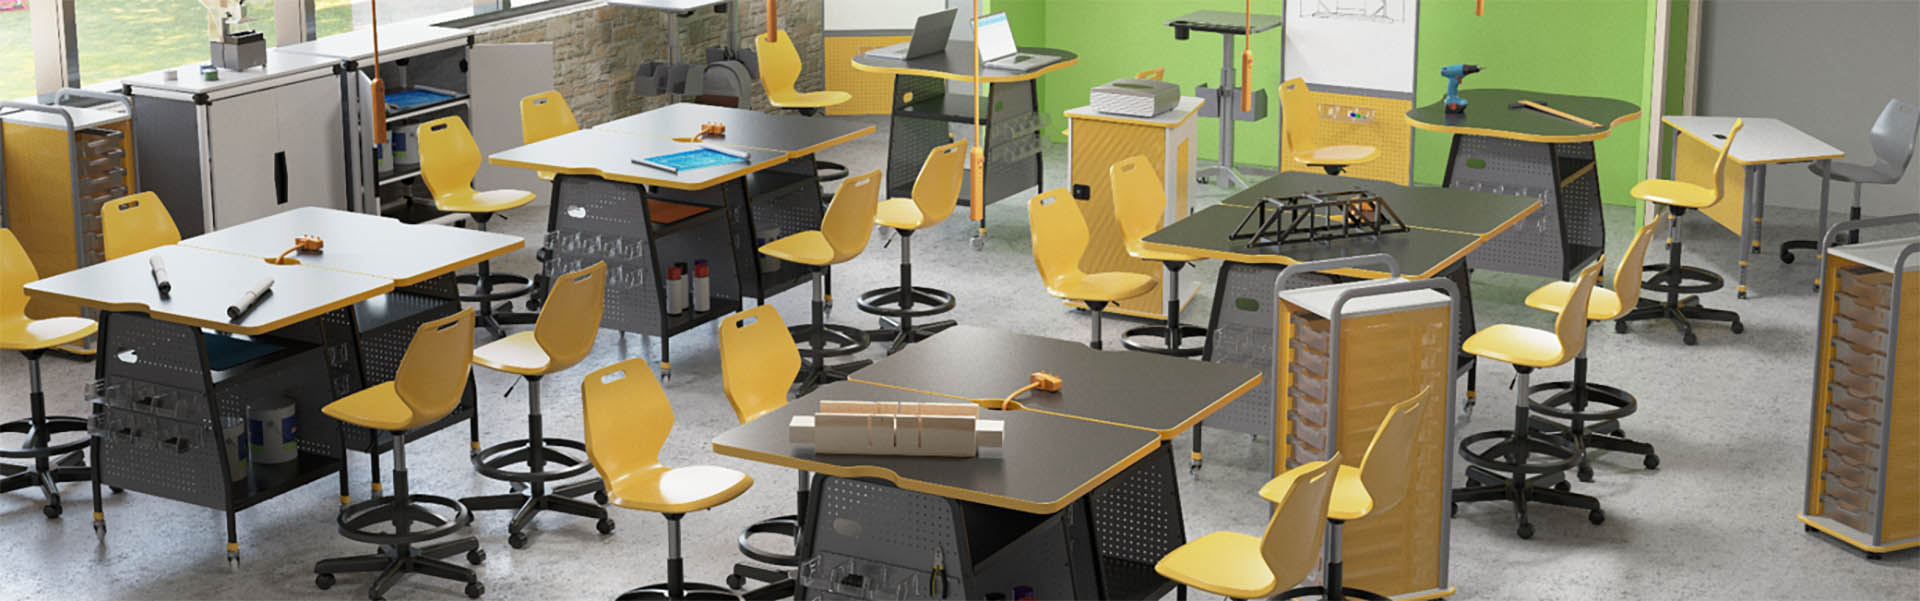 Classroom Design Considerations ~ Five key considerations when designing a makerspace